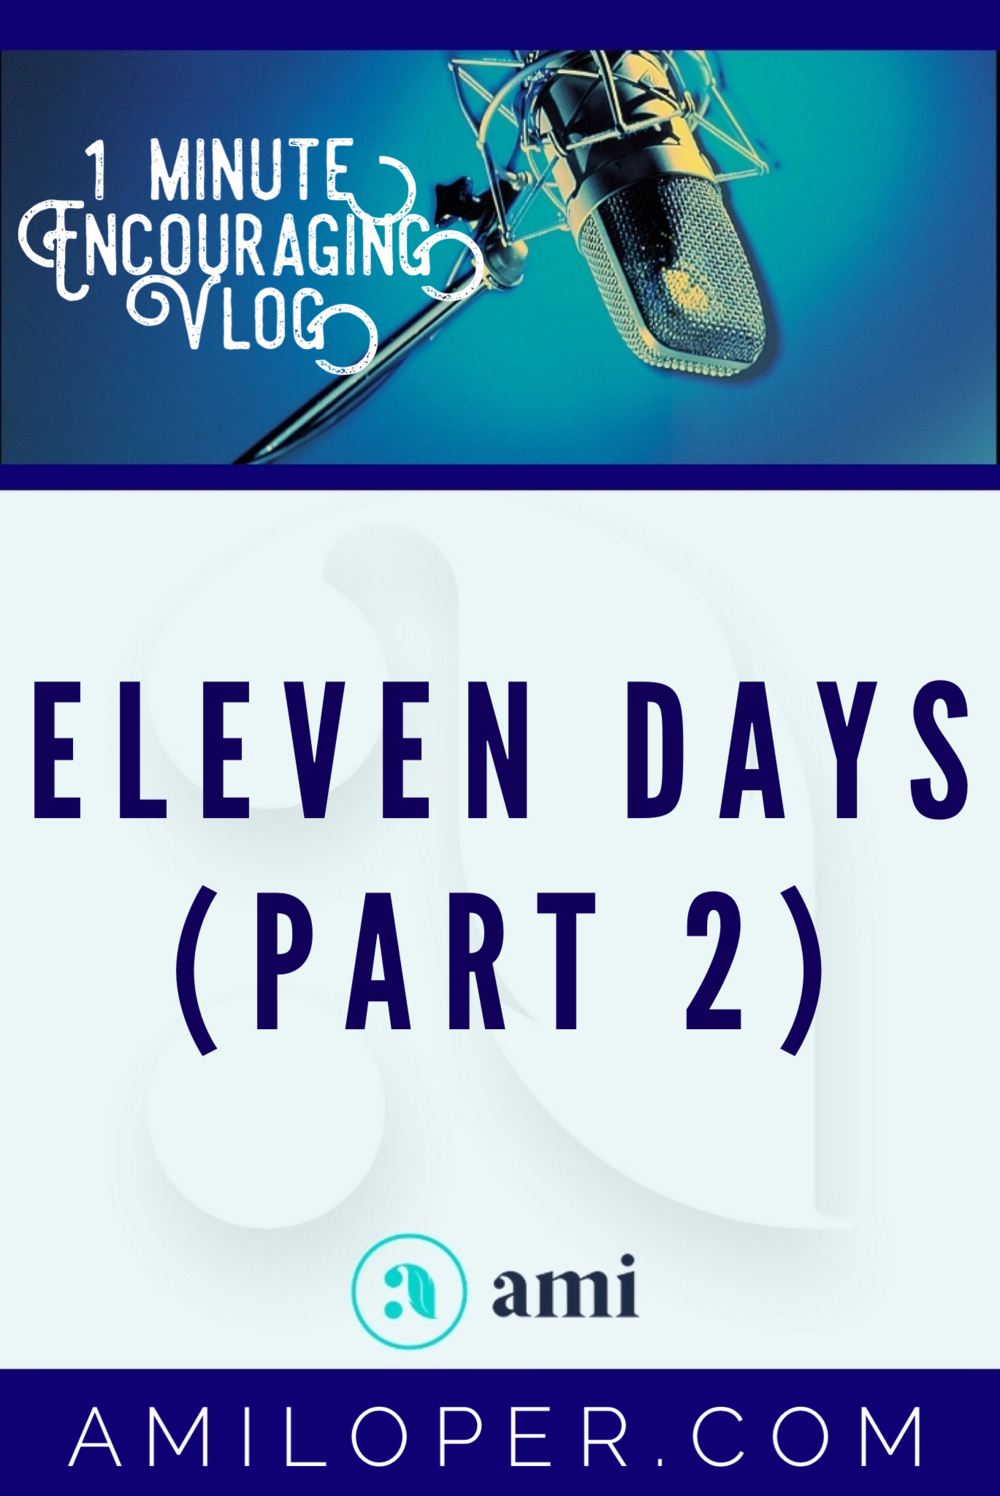 Some say that the Israelites could have journeyed to the Promised Land in eleven days. But how is that thinking setting our own faith journey up for failure? #WaitingOnGod #BibleStudy #ChooseJoy #vlog